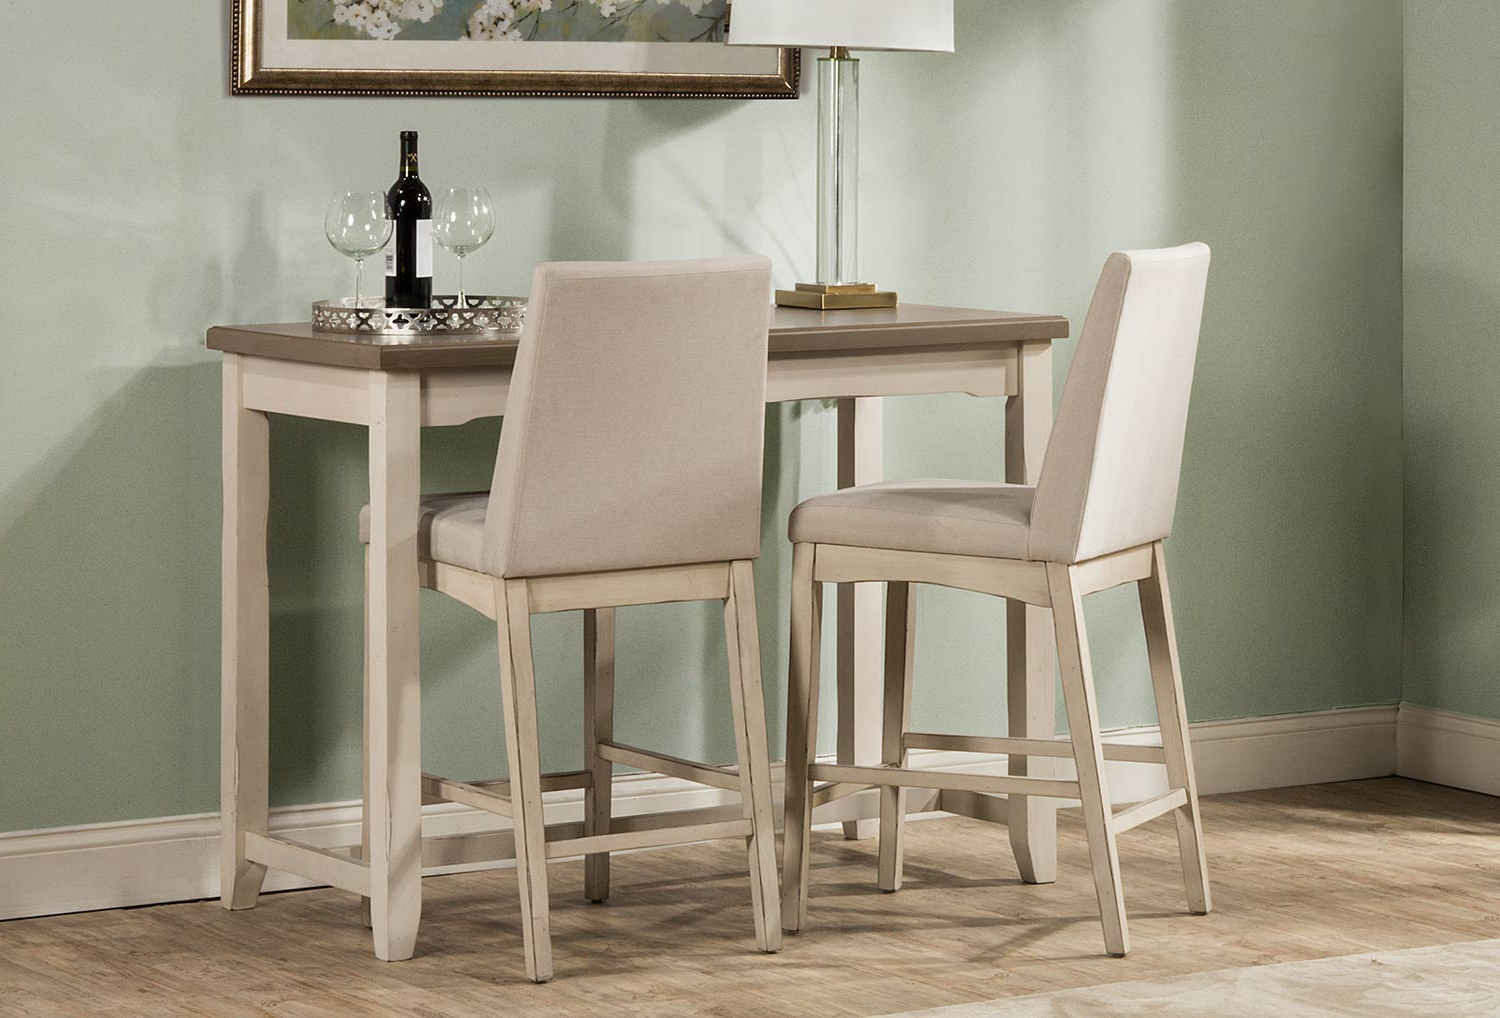 Hillsdale Clarion 3 Piece Counter Height Dining Set – Gray/white For 2020 3 Piece Dining Sets (Gallery 25 of 25)